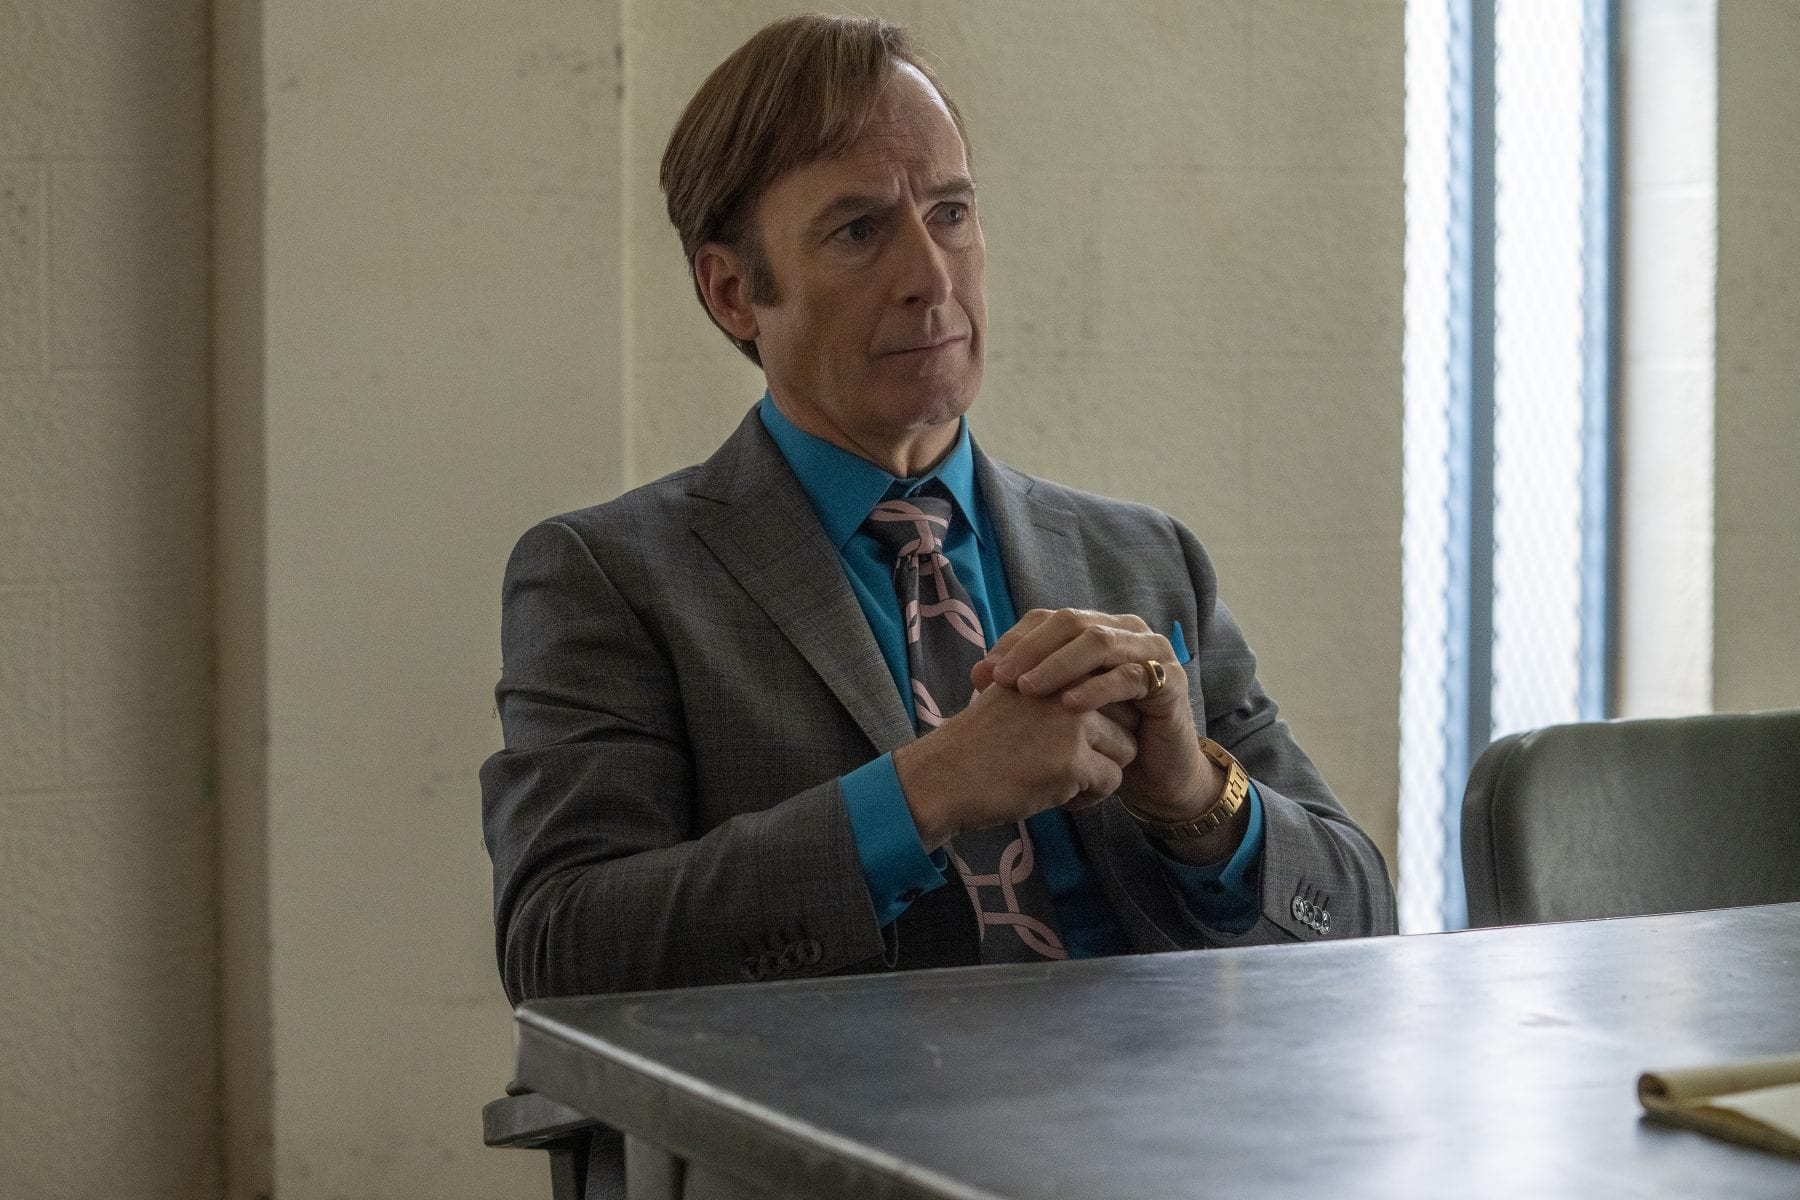 Jimmy sits at the table in the interrogation room practicing law as Saul Goodman